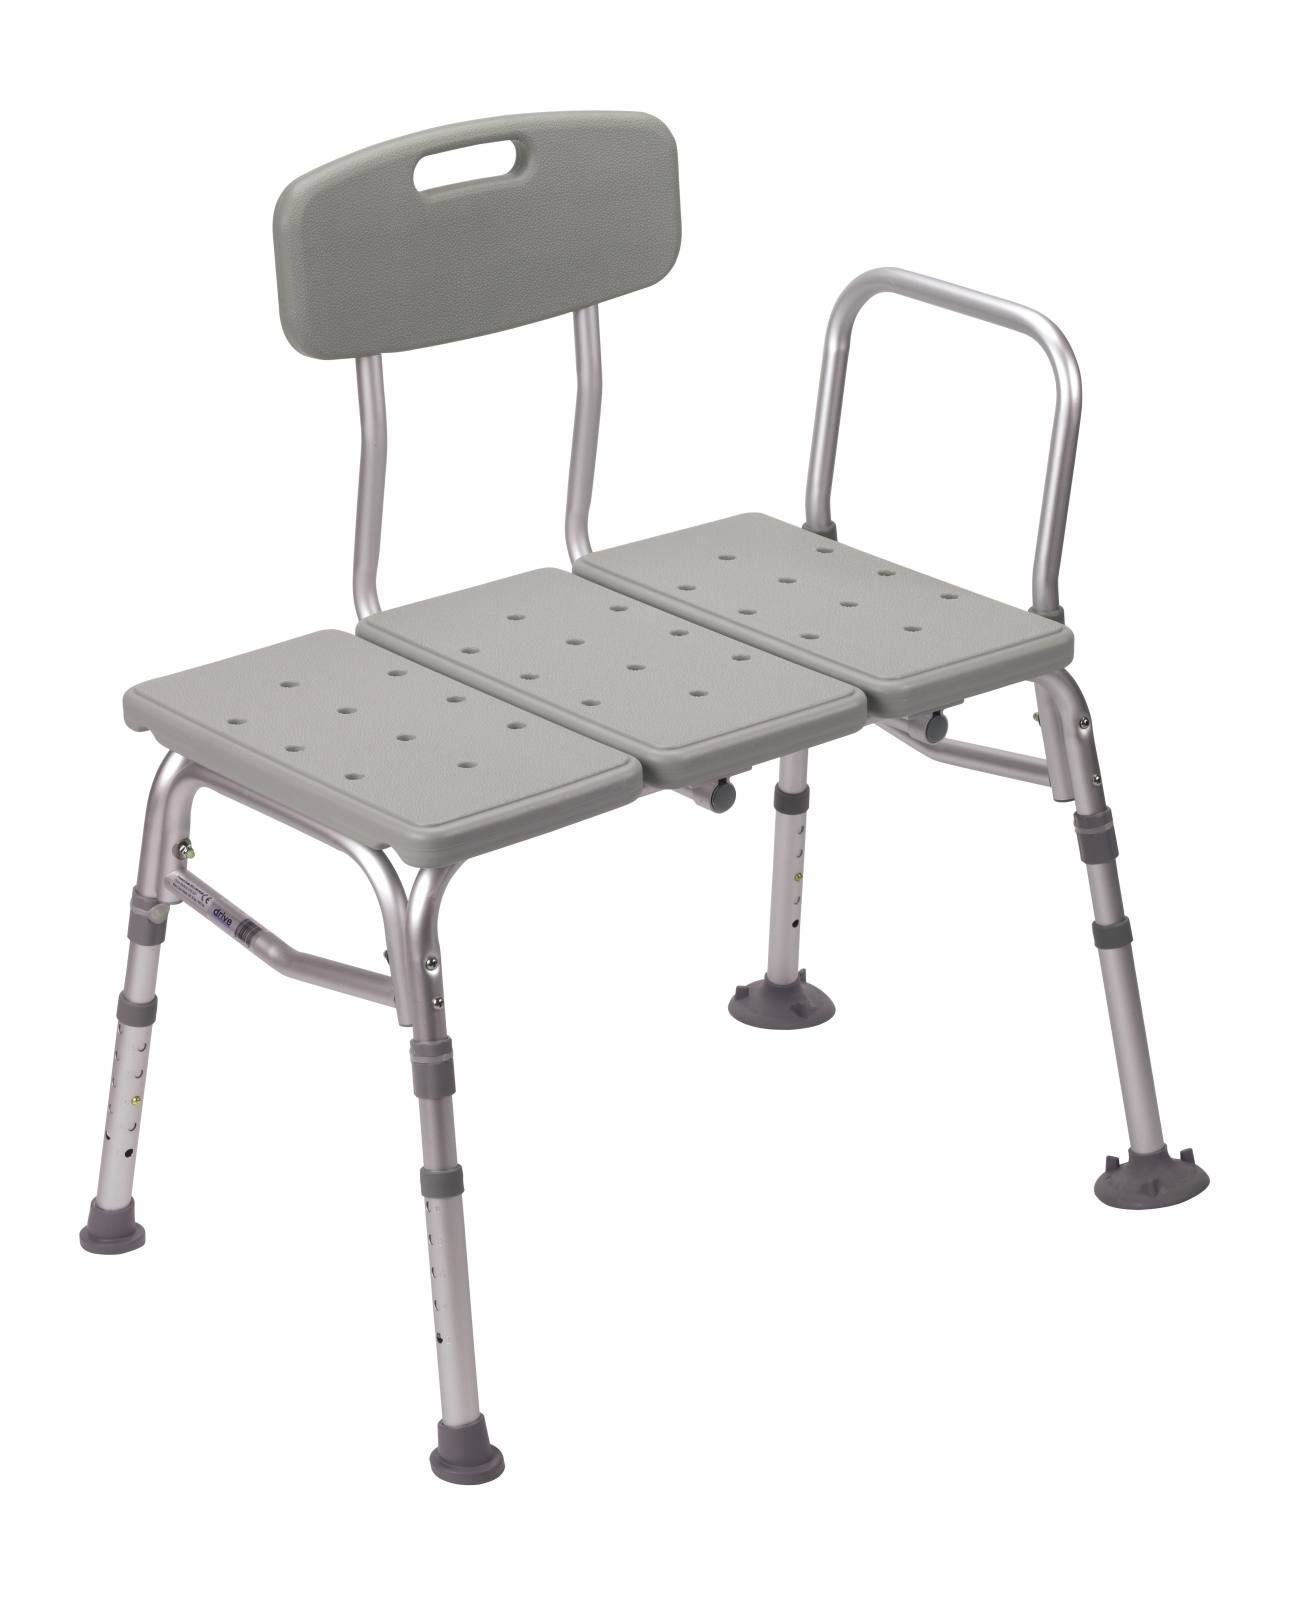 Shower Chair Vs Tub Transfer Bench Clear Dining Chairs Uk Plastic With Adjustable Backrest Bathroom Safety